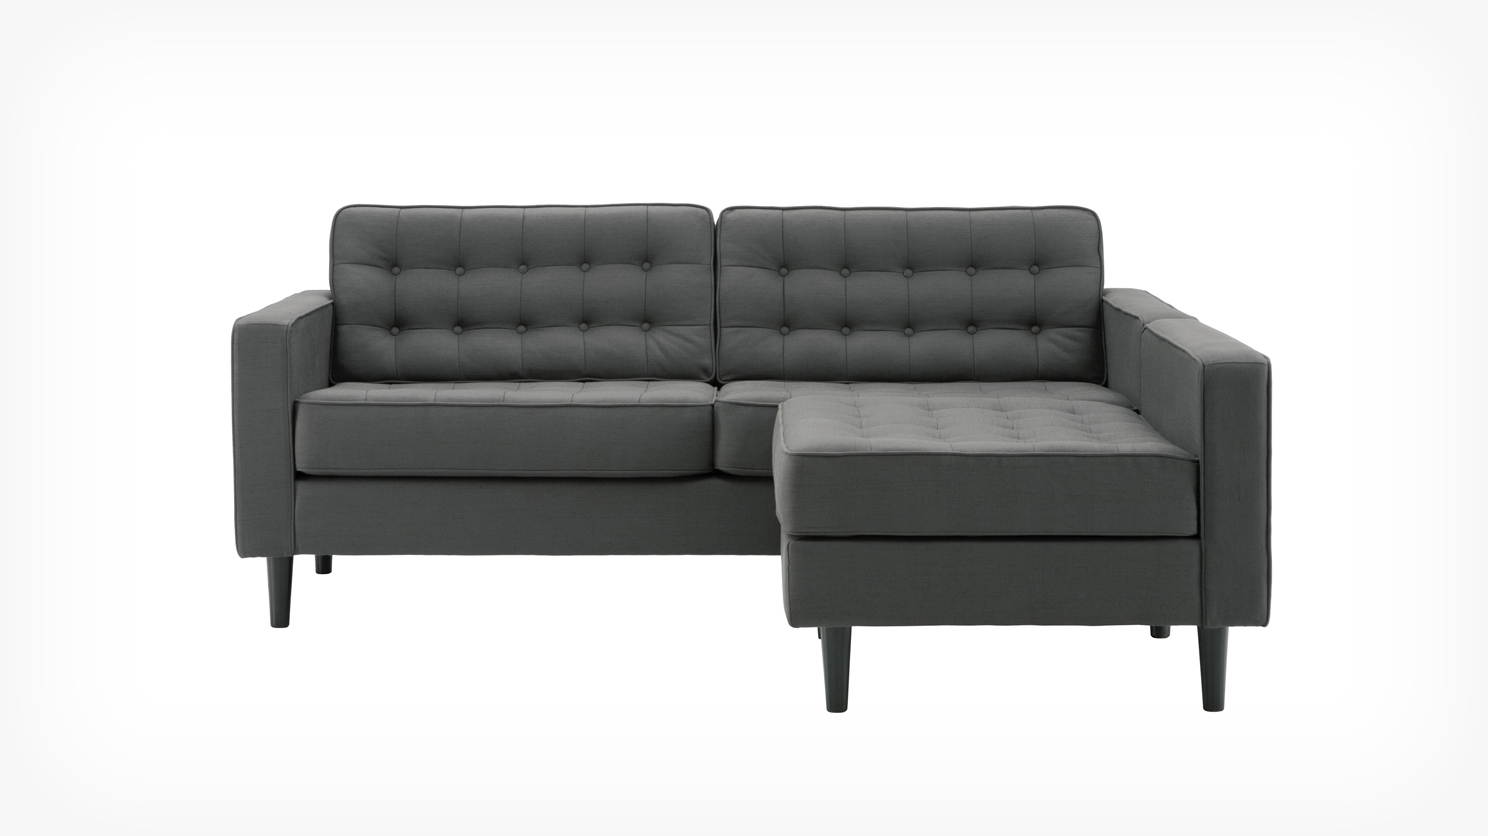 Eq3 | Reverie Apartment 2 Piece Sectional Sofa With Chaise – Fabric Intended For Eq3 Sectional Sofas (Image 8 of 10)